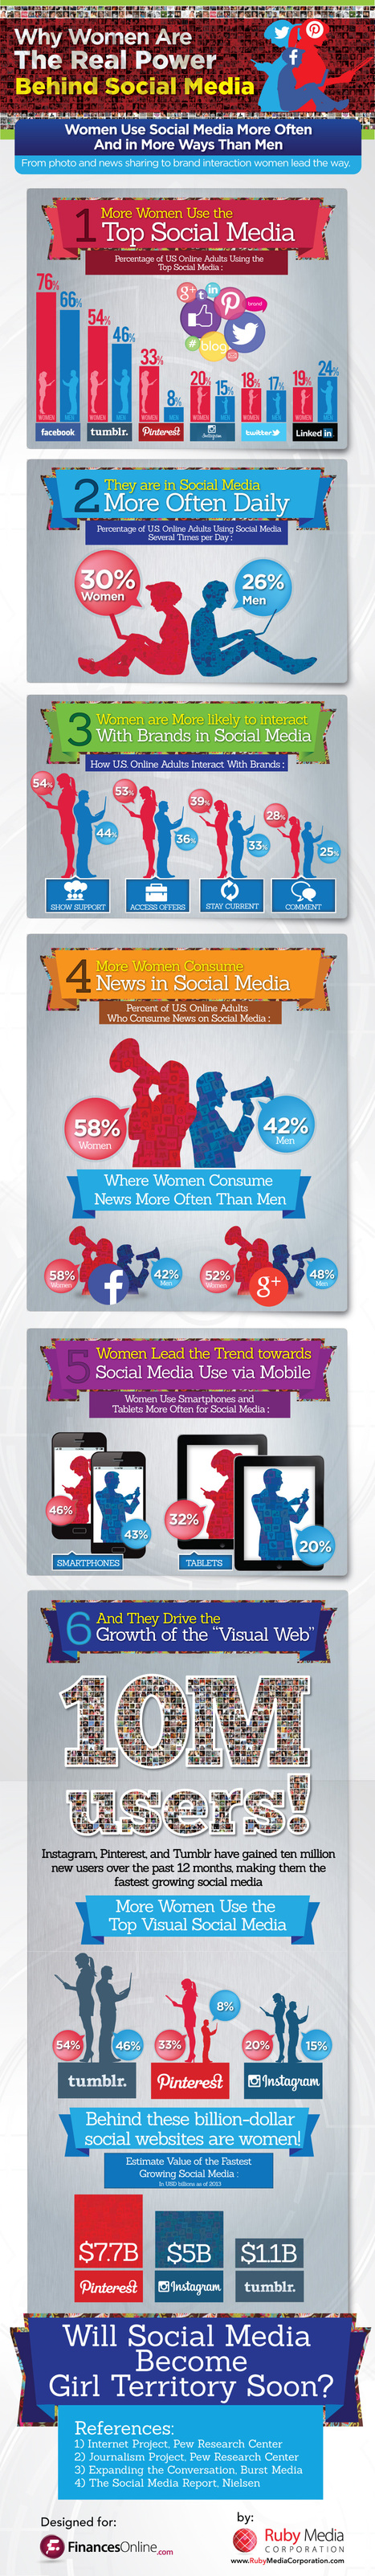 Women Dominate Social Media [INFOGRAPHIC] - AllTwitter | Social Media News & Tips | Scoop.it